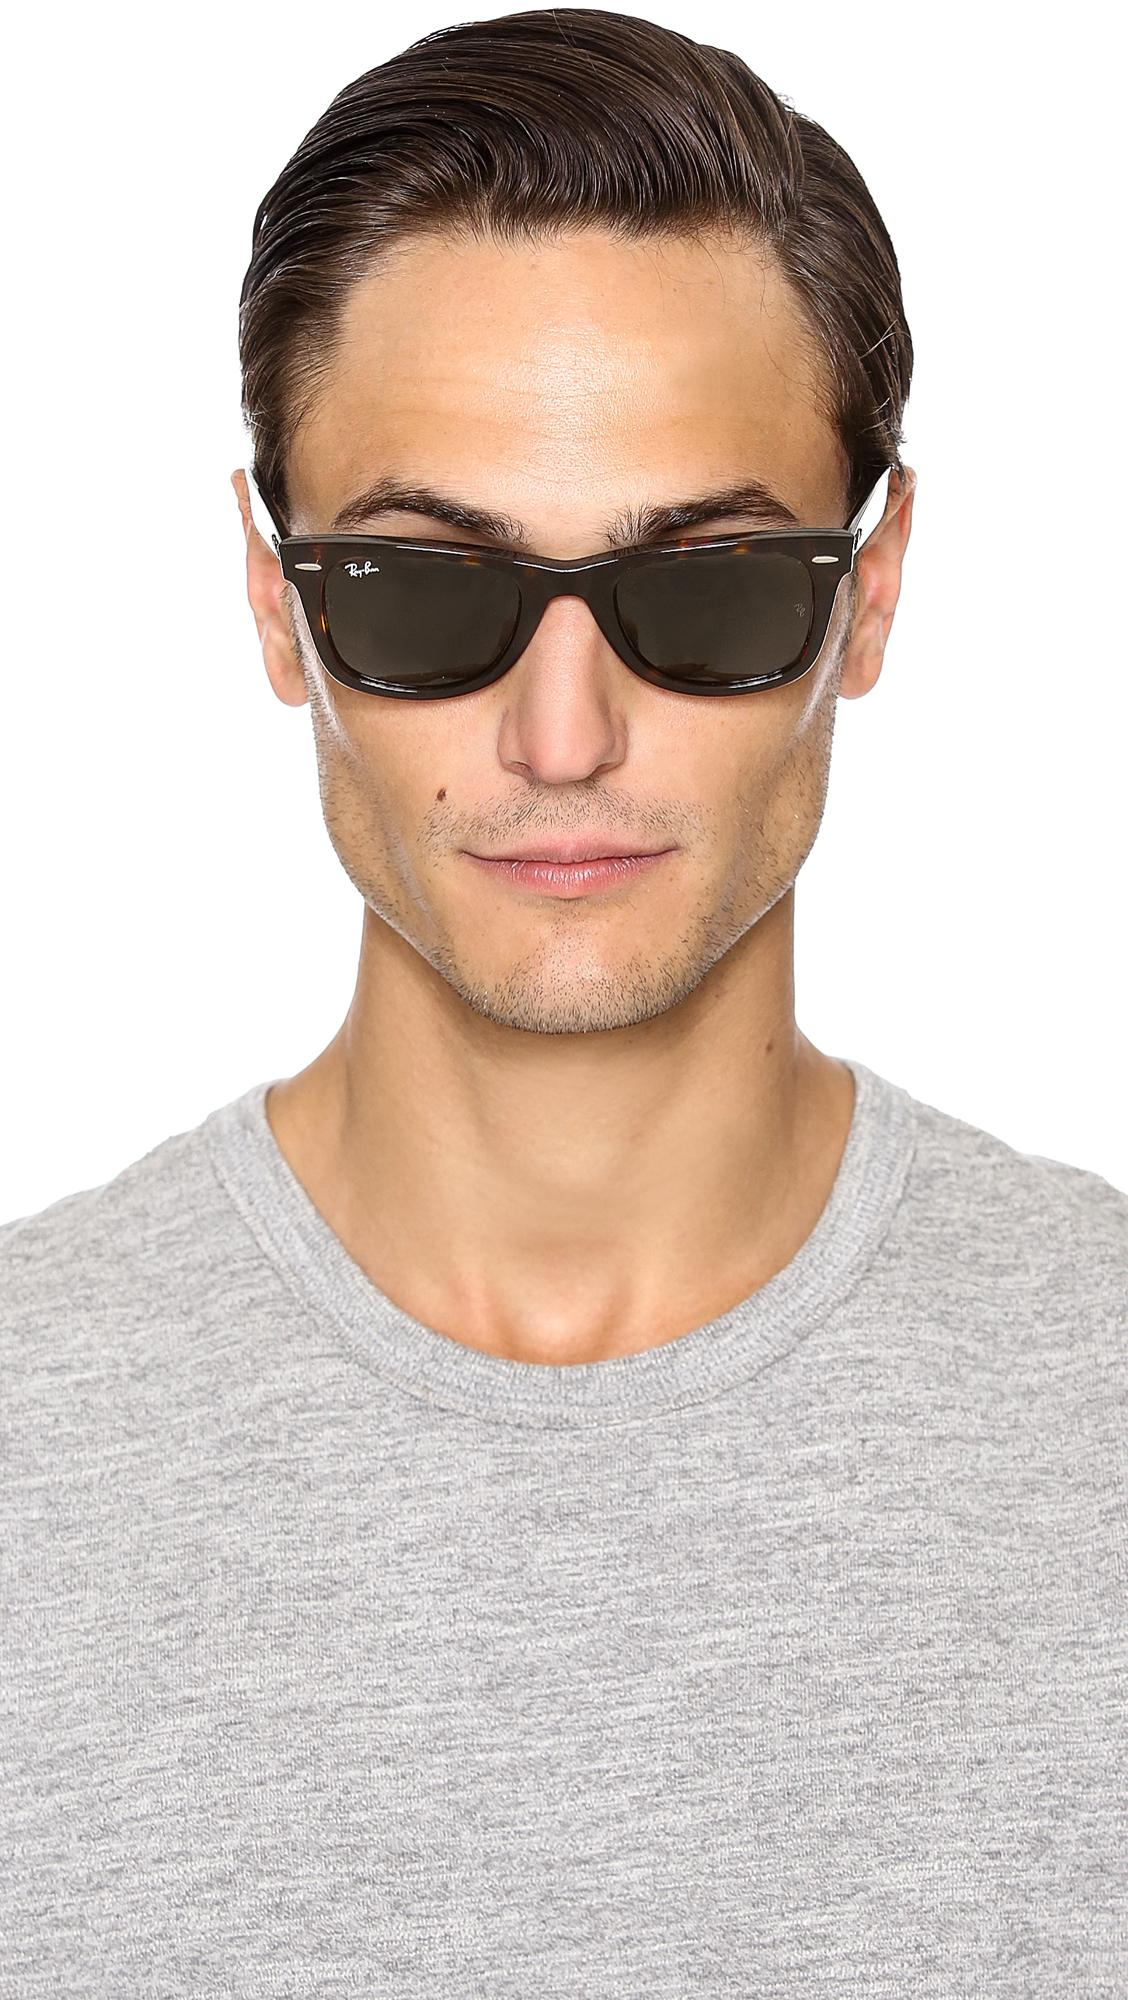 e67892e1a3 Ray-Ban - Green Original Wayfarer Sunglasses for Men - Lyst. View fullscreen